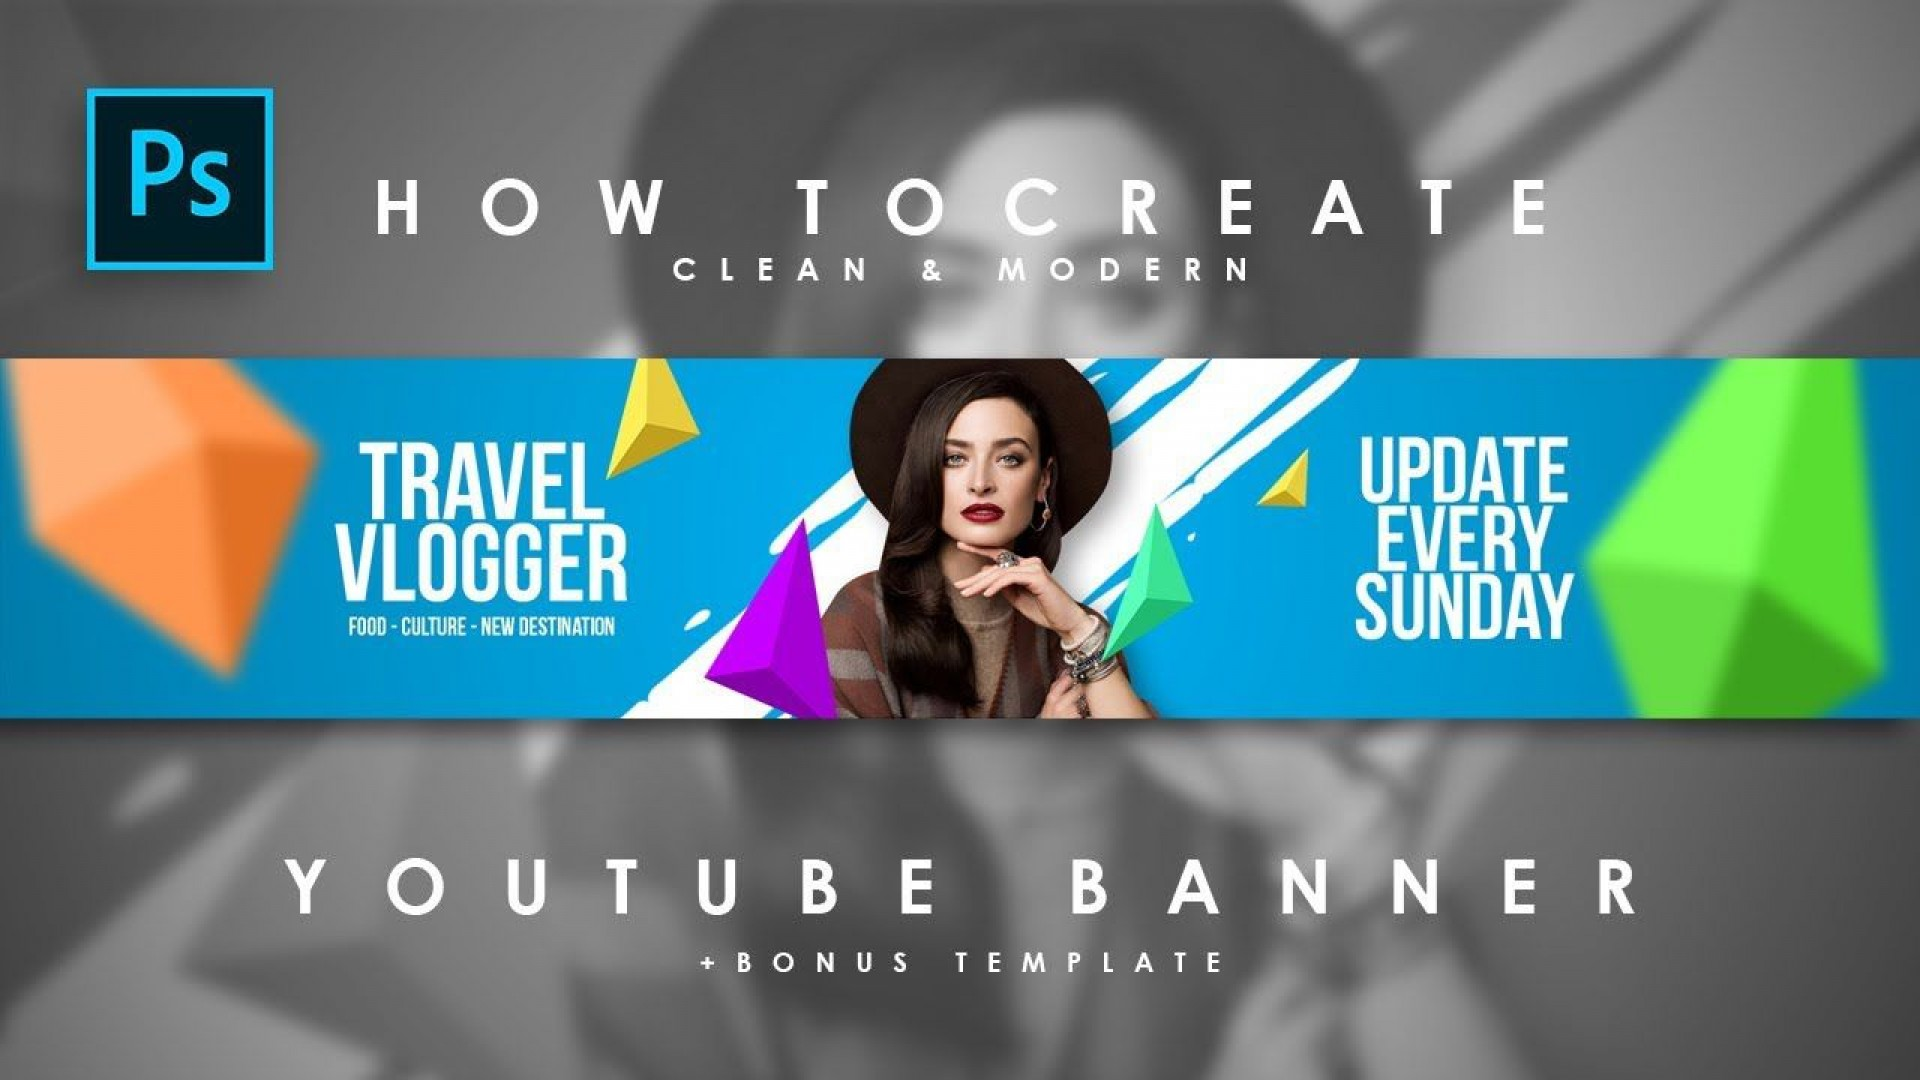 008 Fearsome Youtube Channel Art Template Photoshop Download Photo 1920